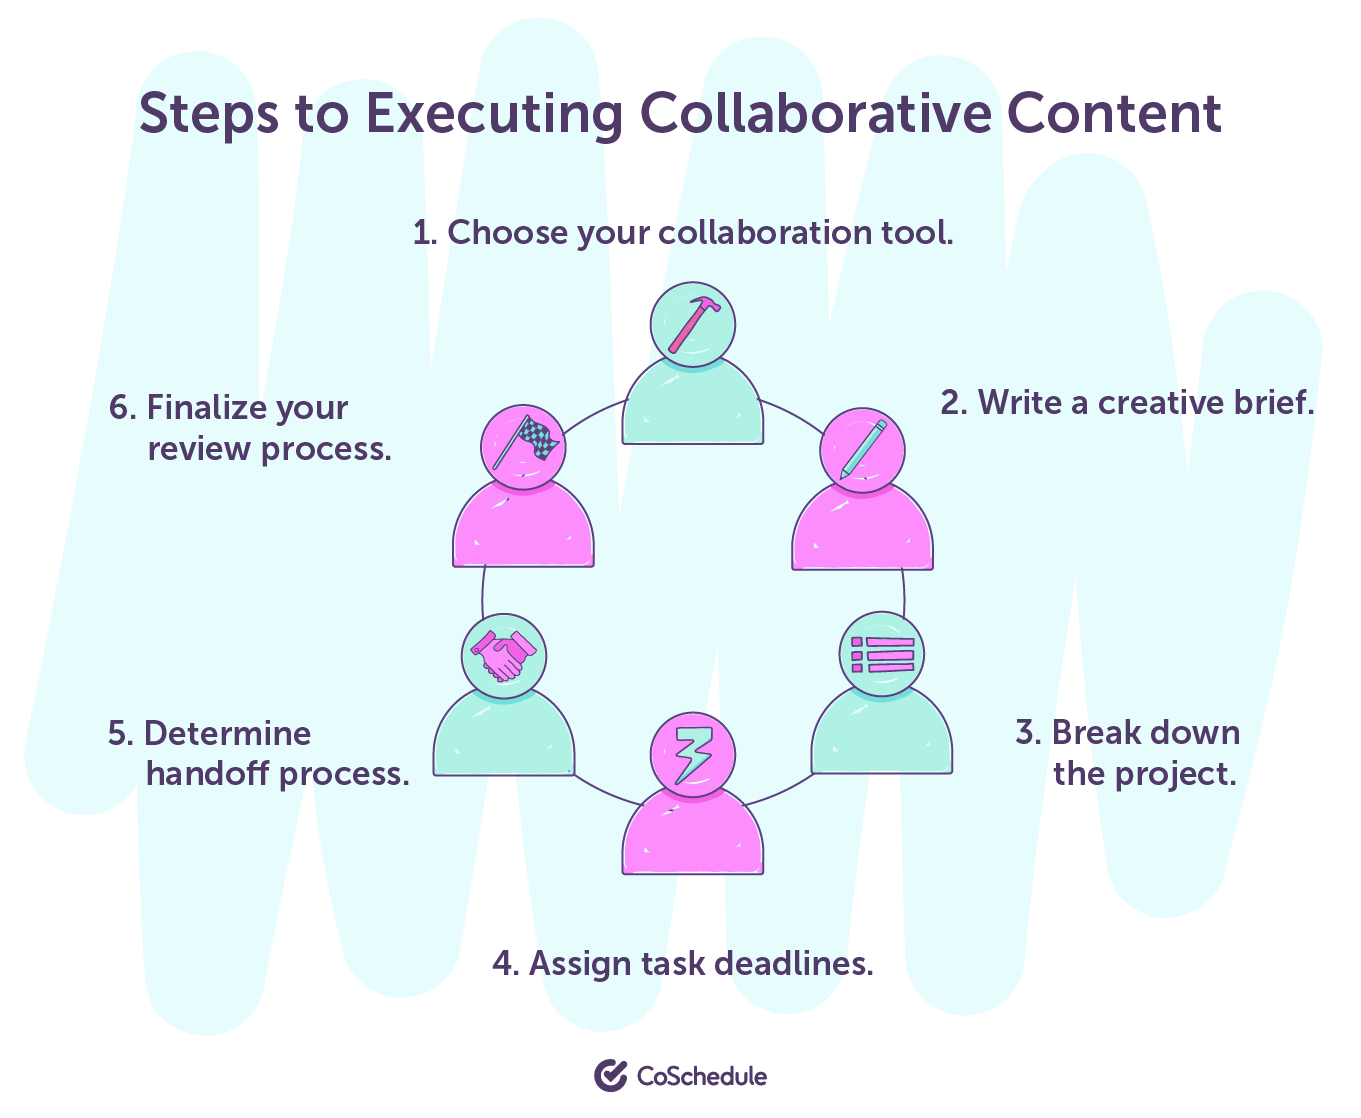 Steps to executing collaborative content